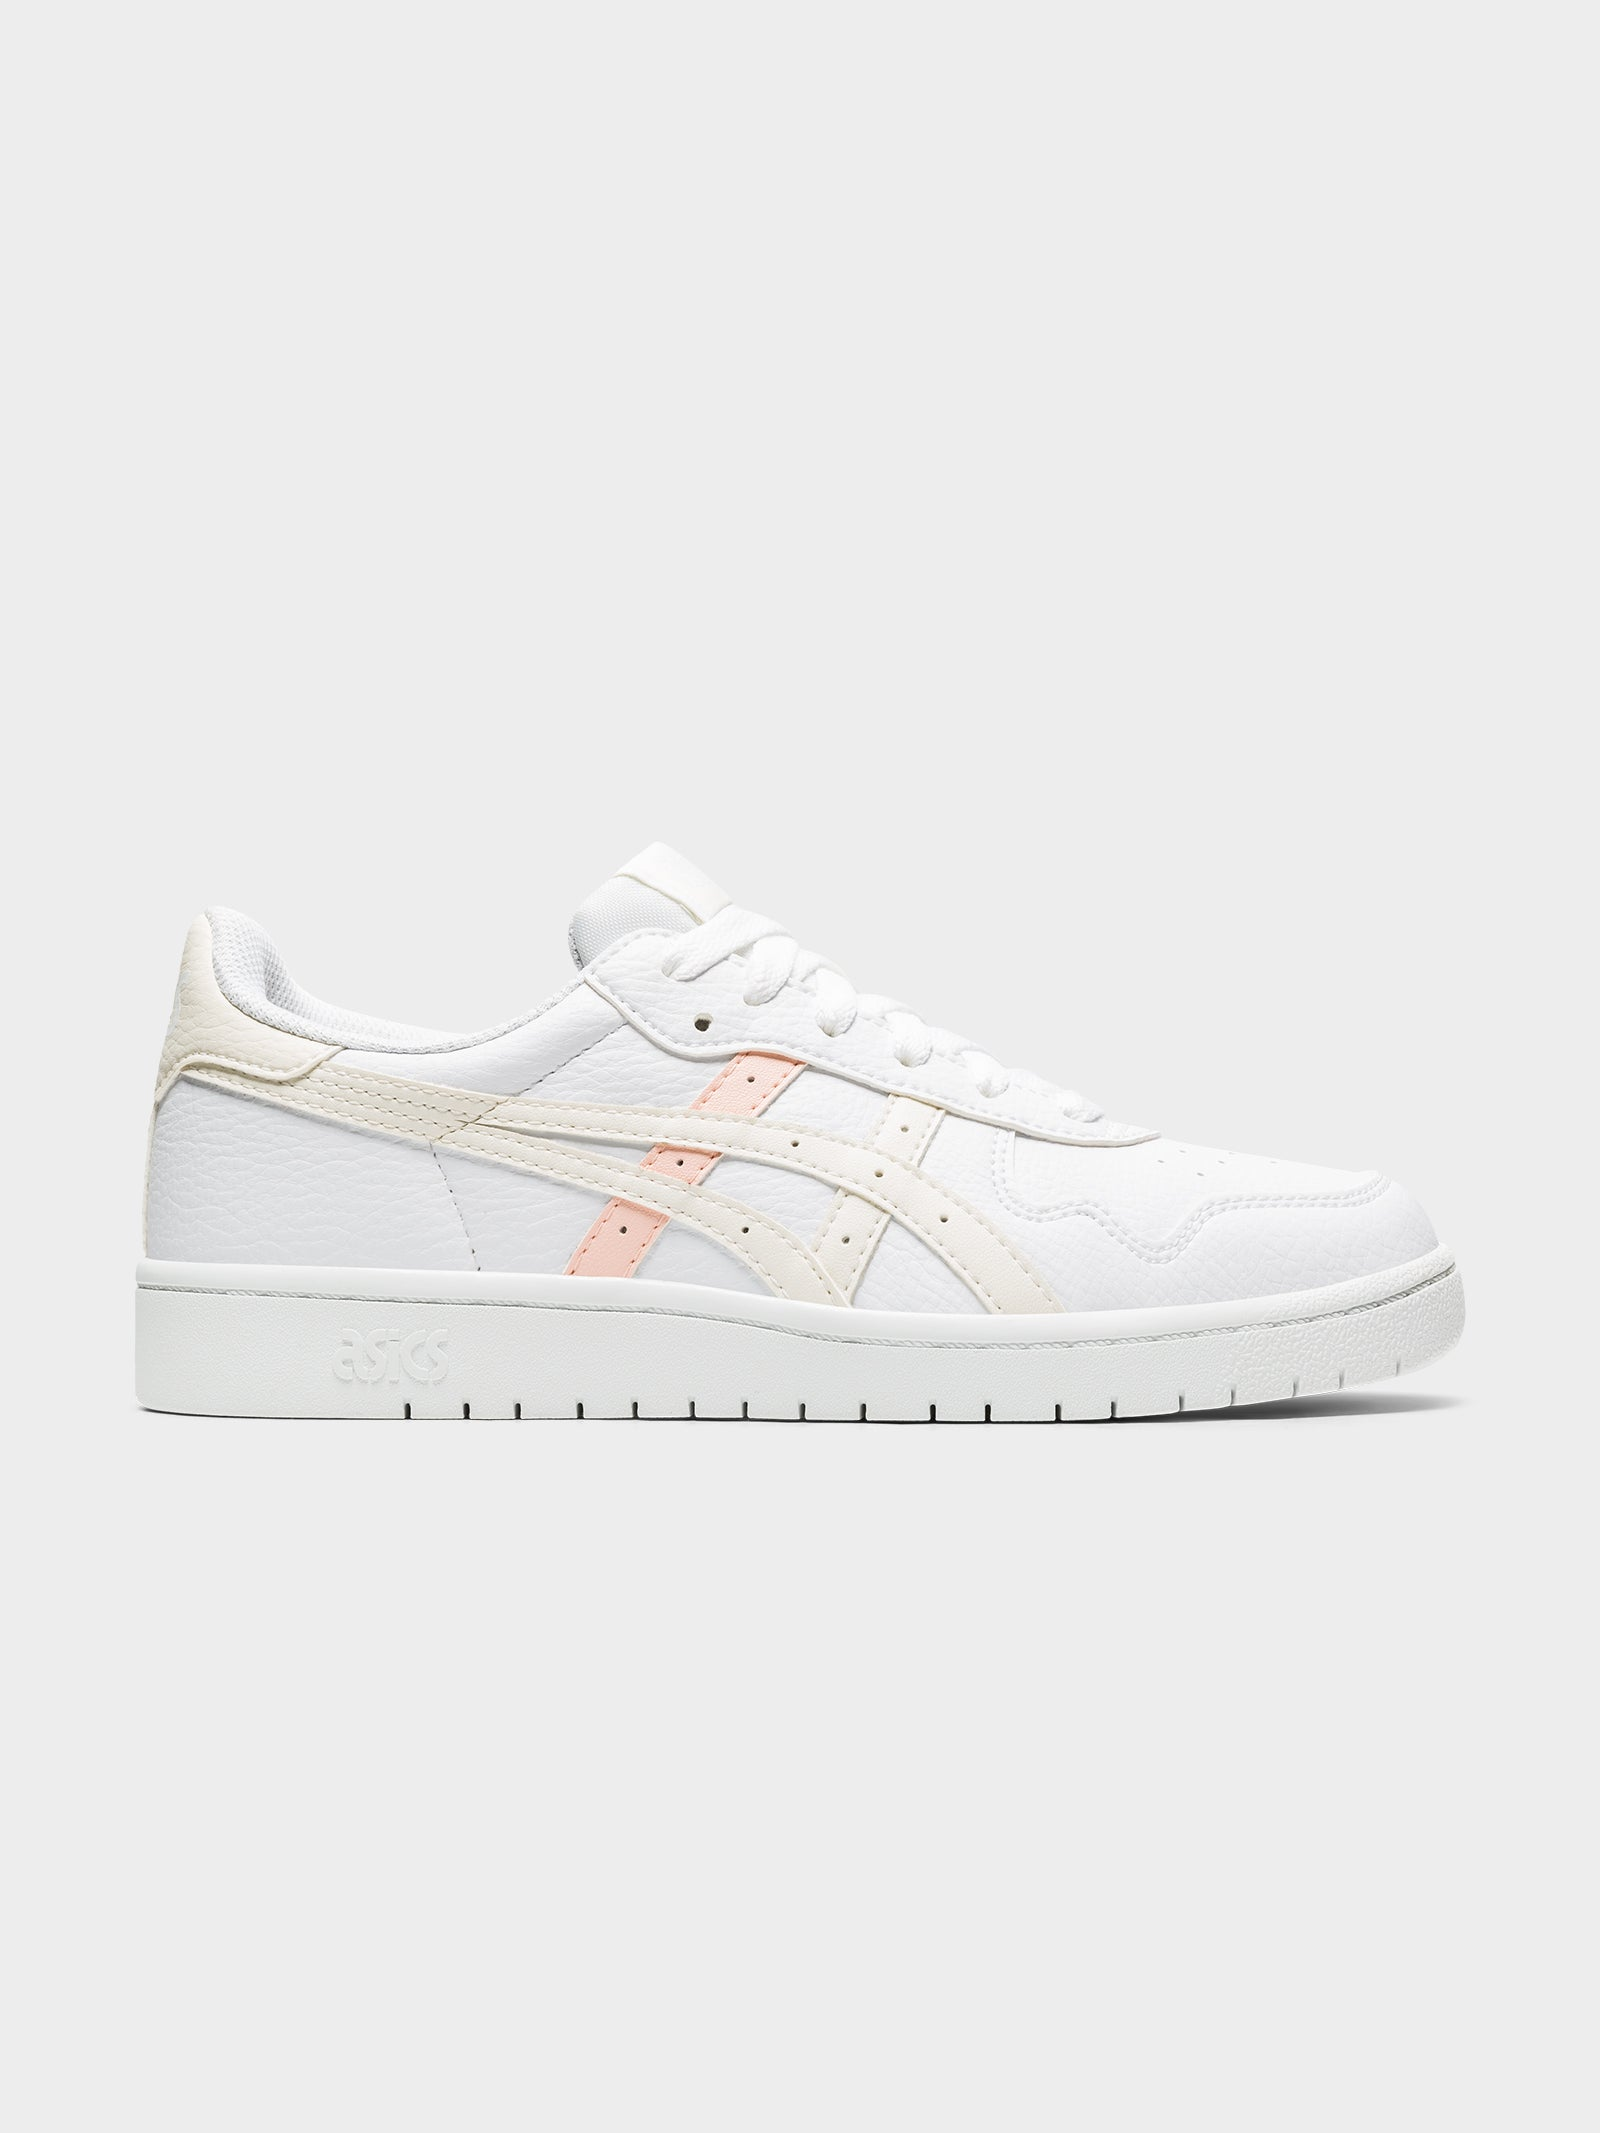 Womens Japan S Sneakers in White Breeze